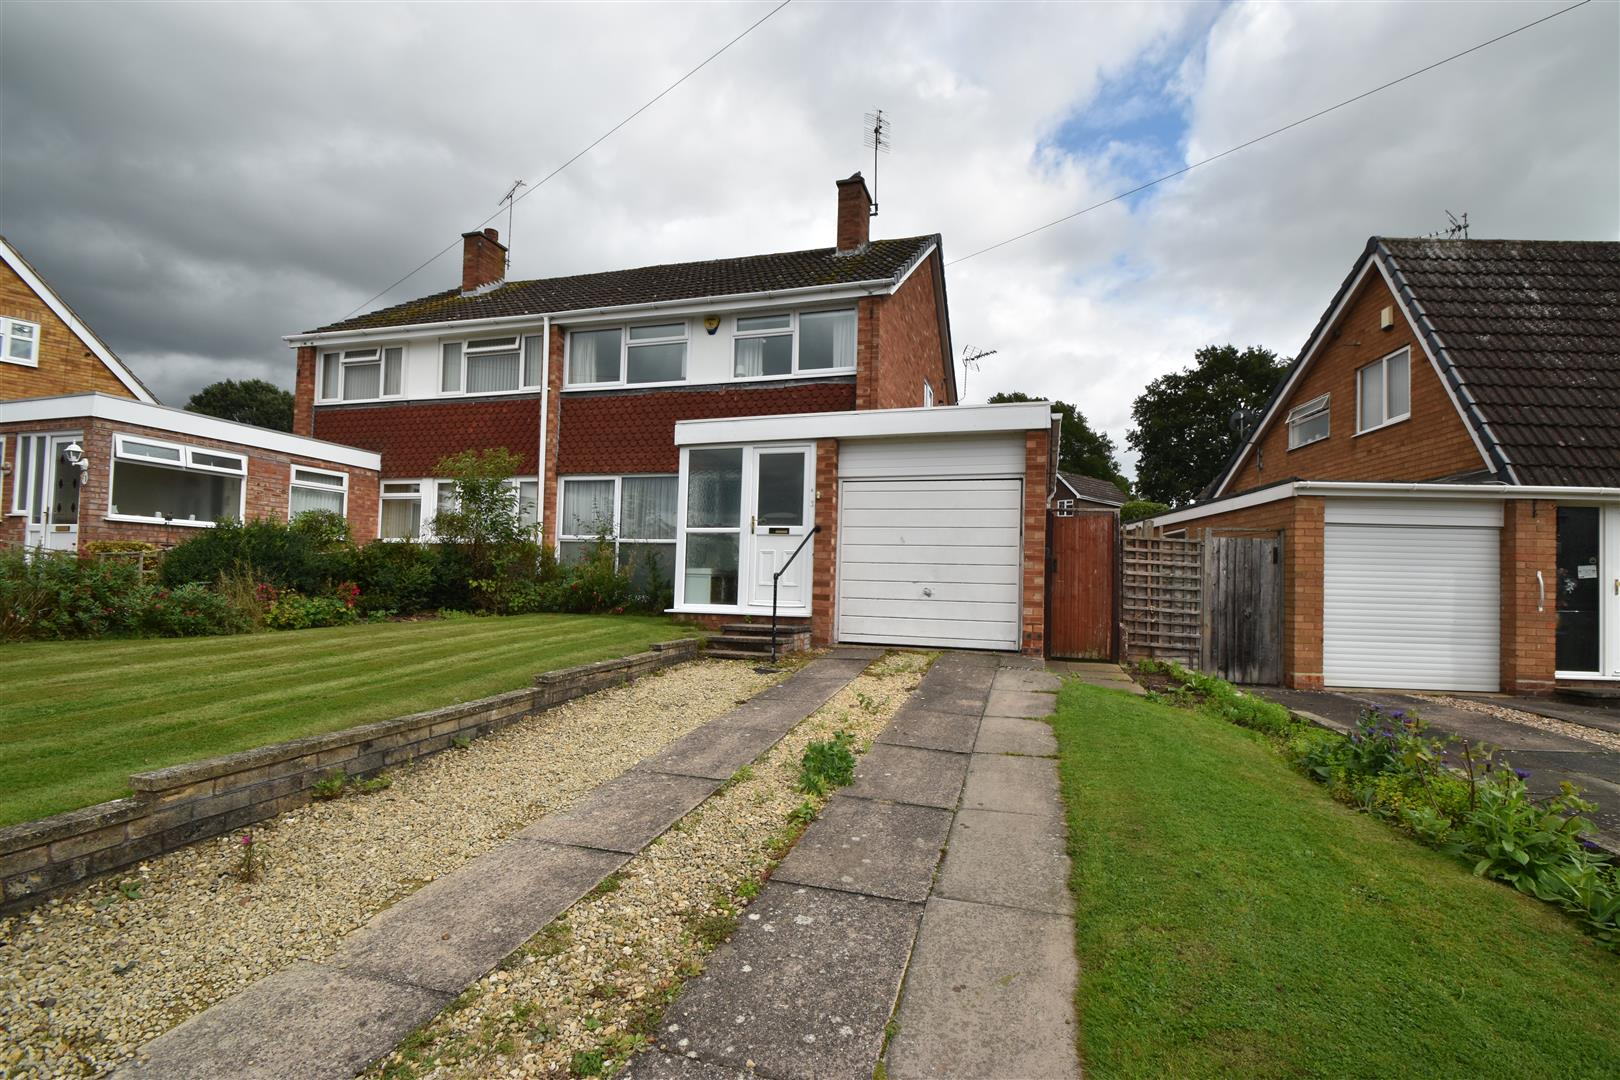 3 Bedrooms Semi Detached House for sale in Pelham Road, Droitwich